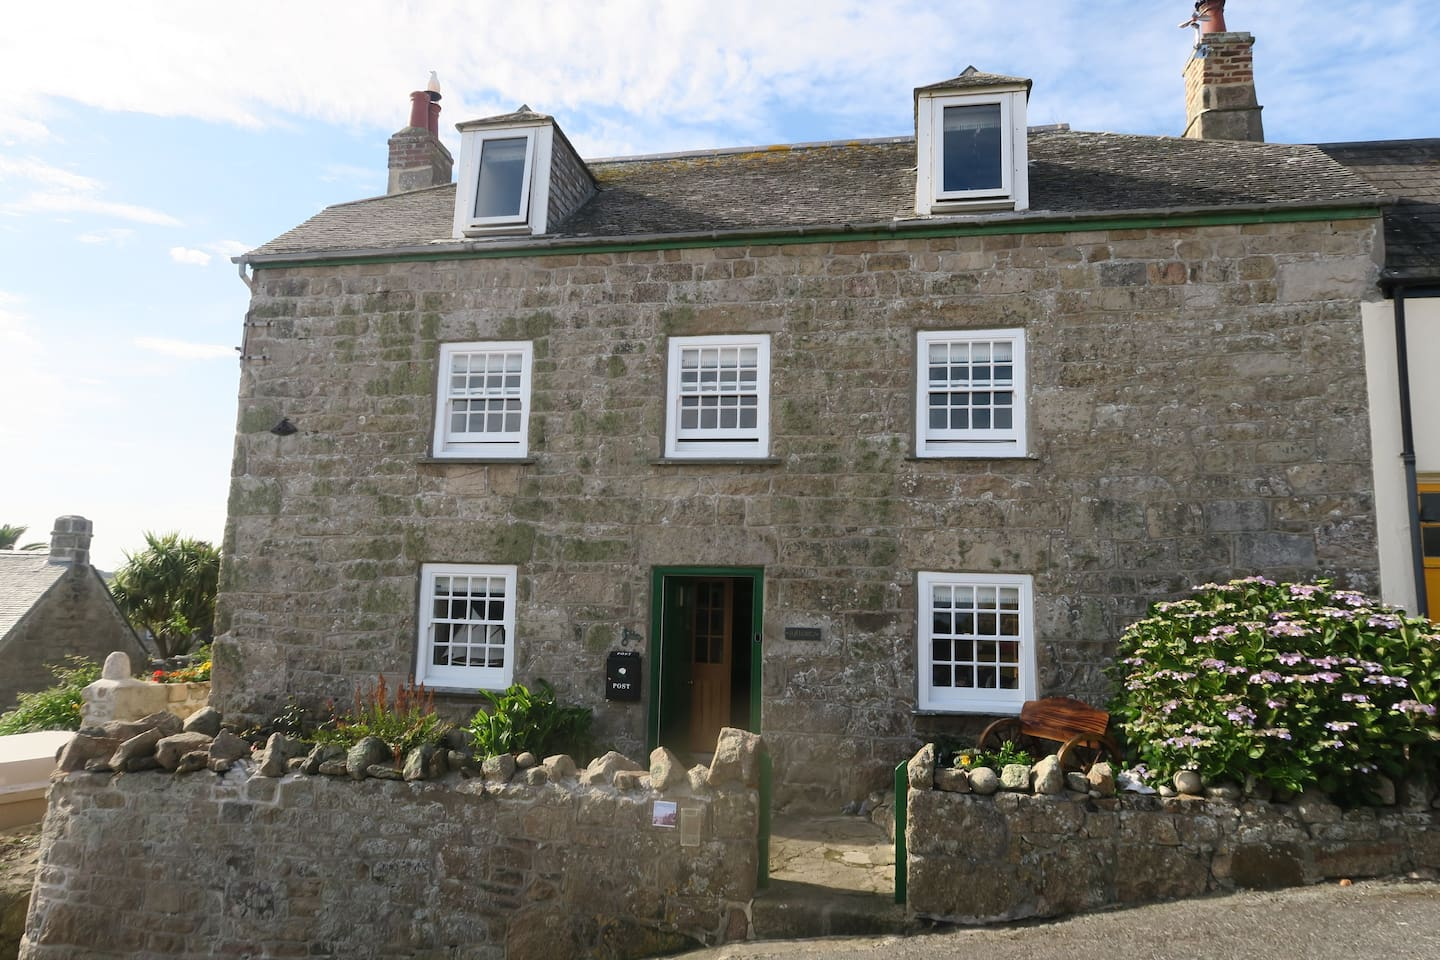 Syllorga House. One of the oldest properties in Hugh town, originally dating to medieval times. Additional storey added in the early 18th century, along with a scantel tiled roof and sash windows..